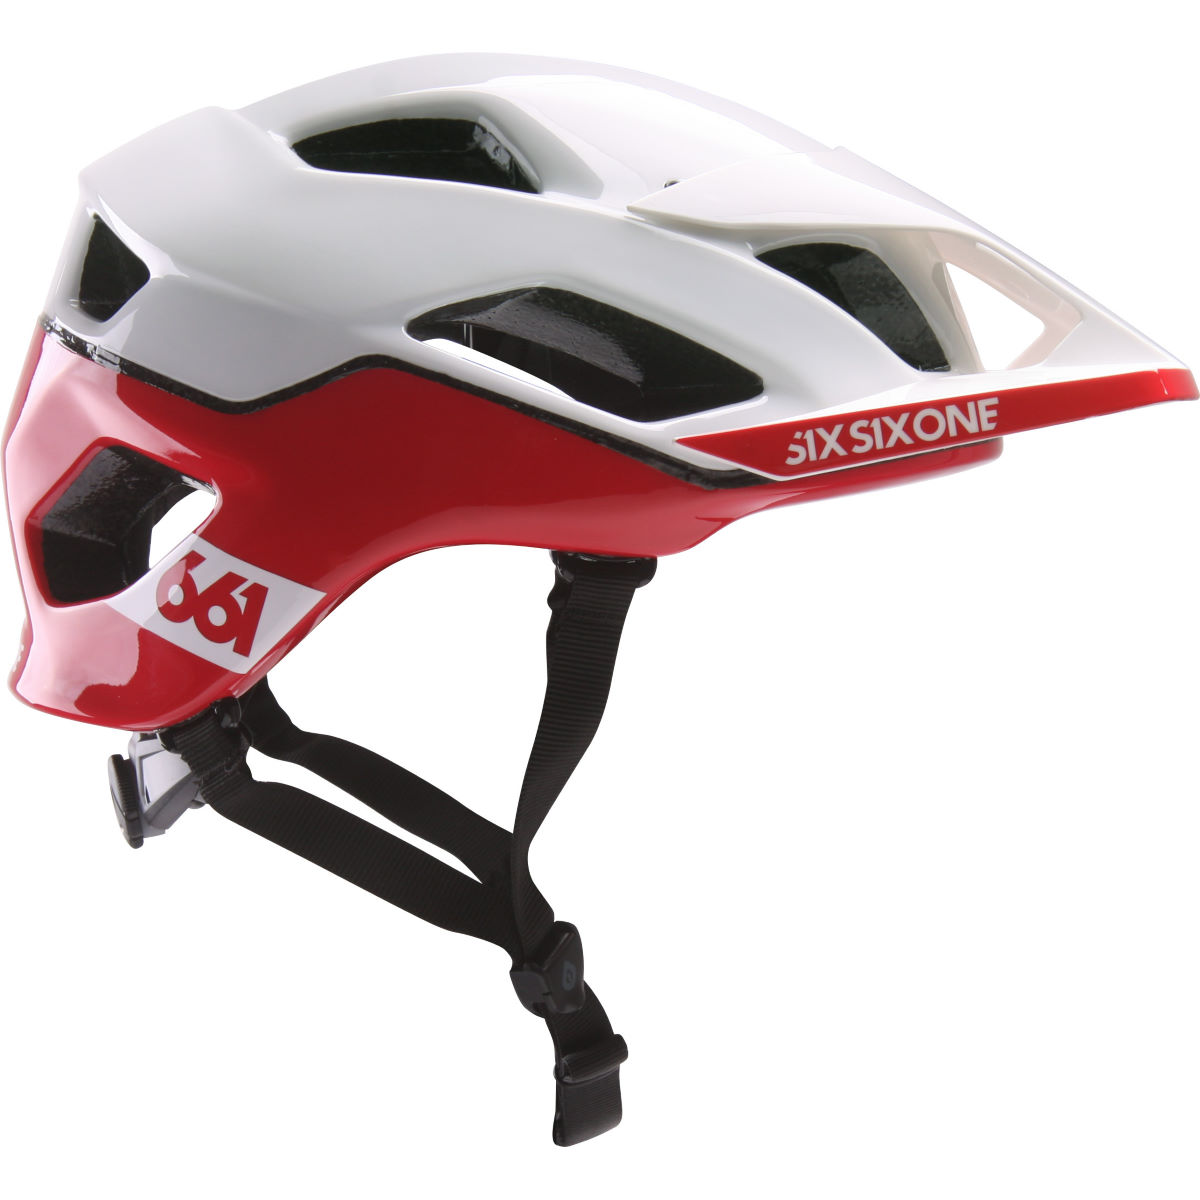 Casque SixSixOne Evo AM Patrol - XS/S Blanc/Rouge Casques